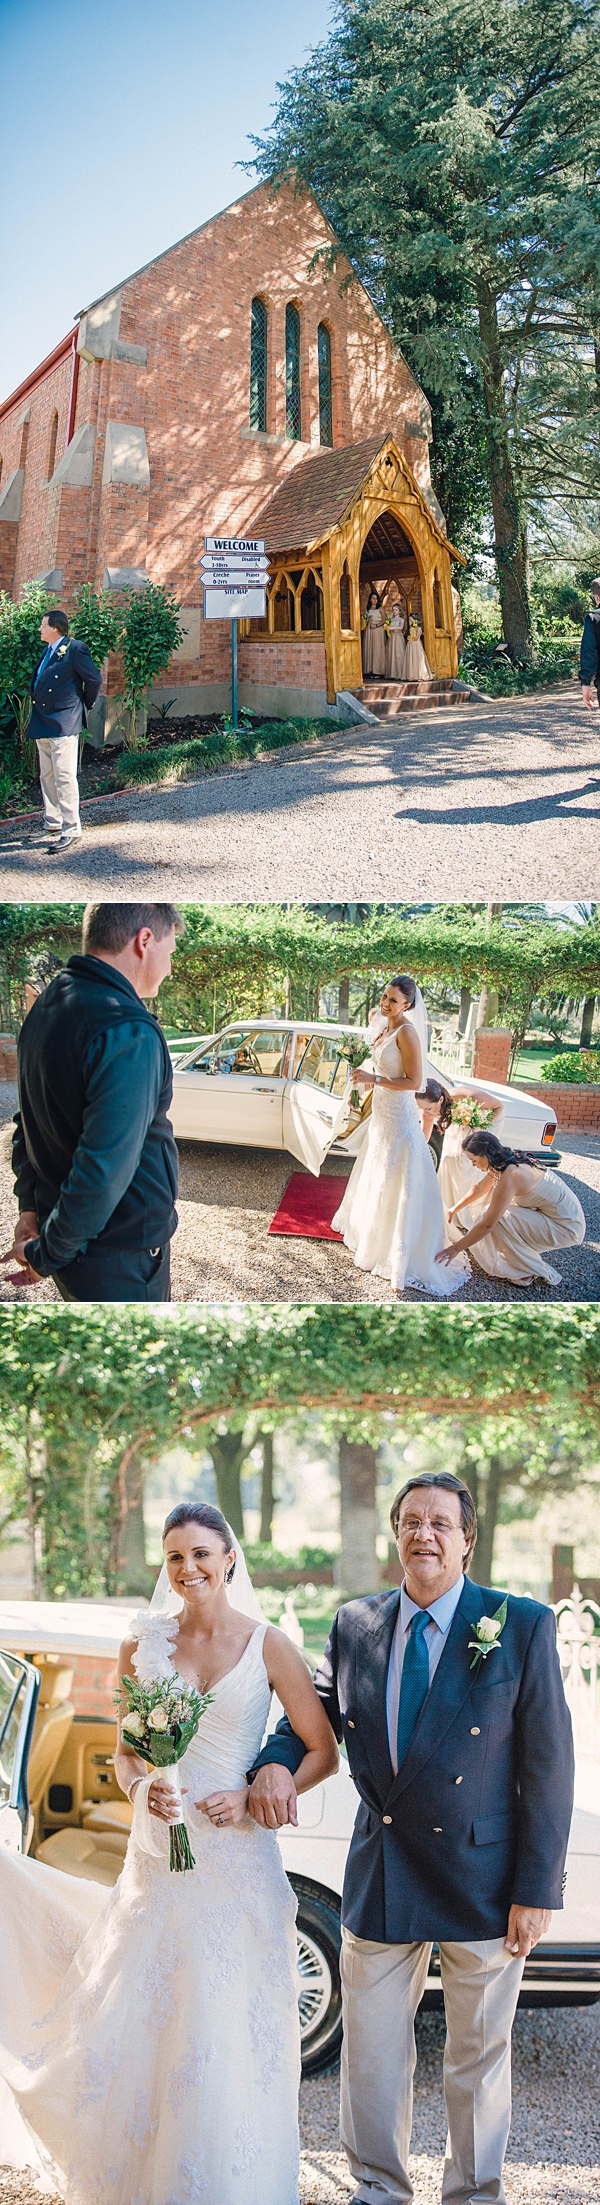 RYAN PARKER PHOTOGRAPHY_CANDLE WOODS ESTATE_PRETORIA_WEDDING-4297.jpg